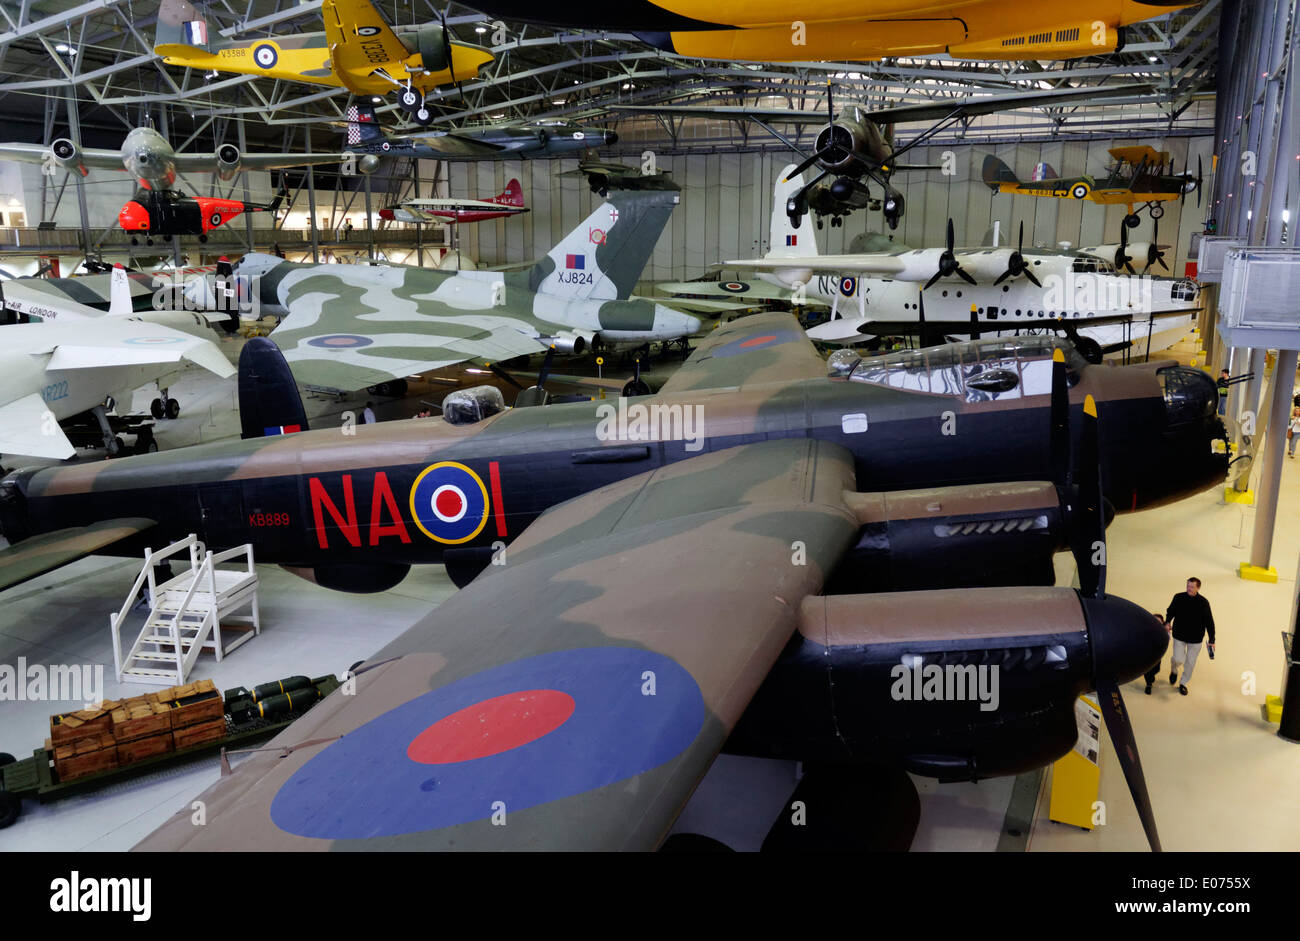 The Avro Lancaster bomber in Duxford Air Museum - Stock Image